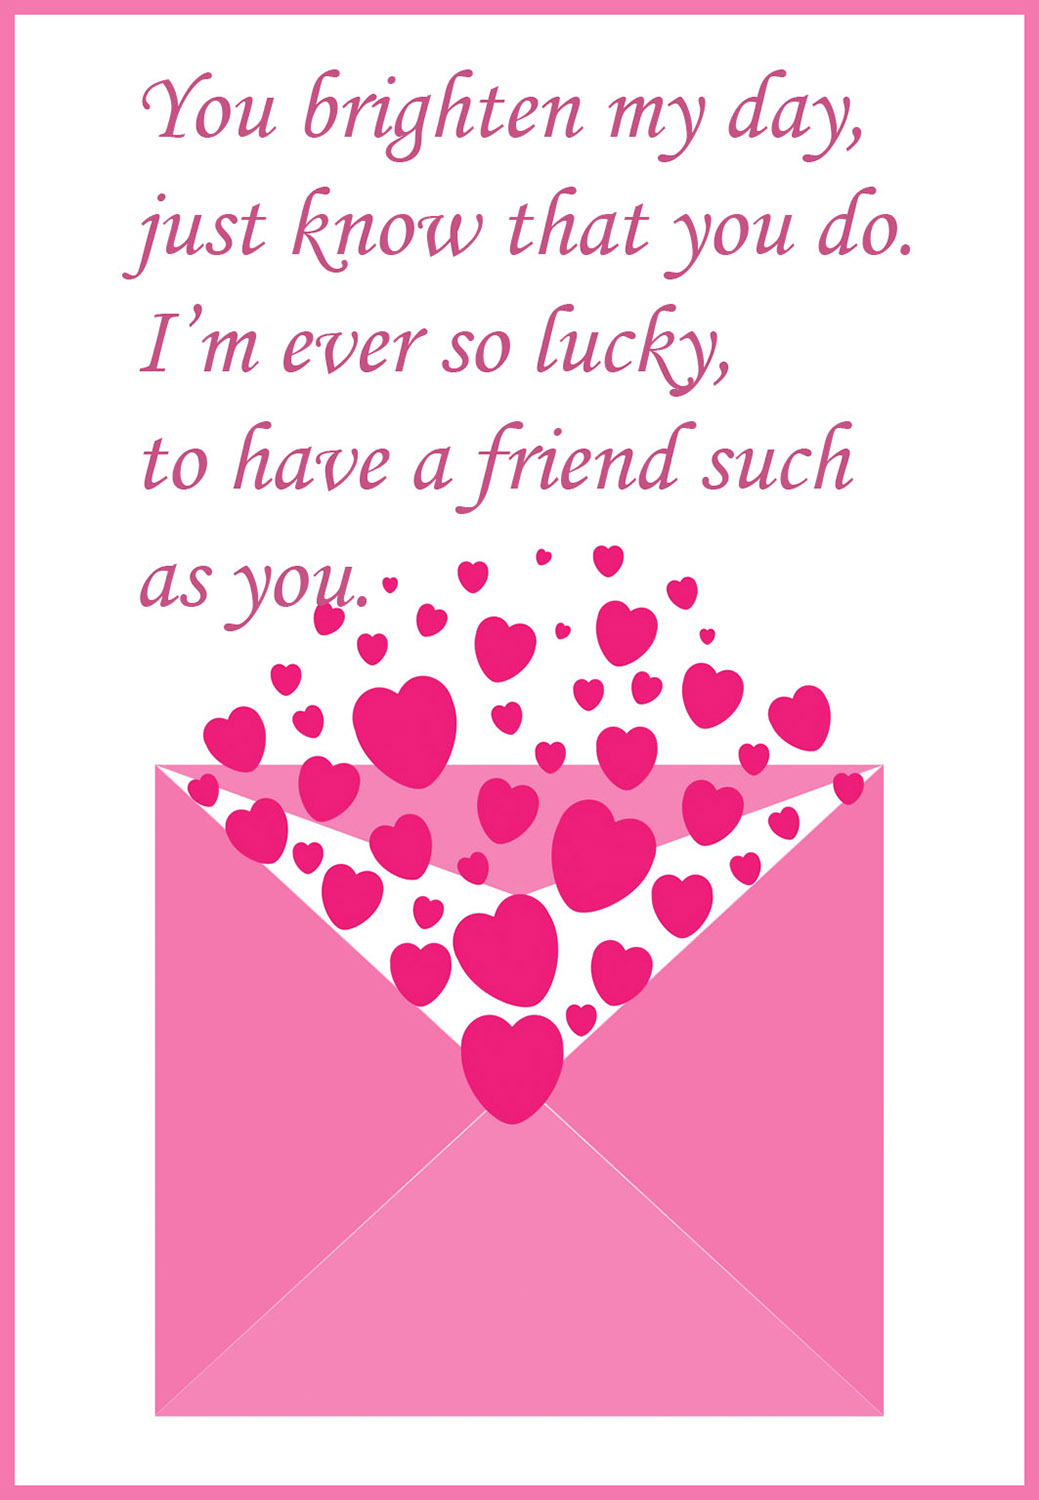 Printable valentine cards free printable greeting cards for What to put on a valentines card